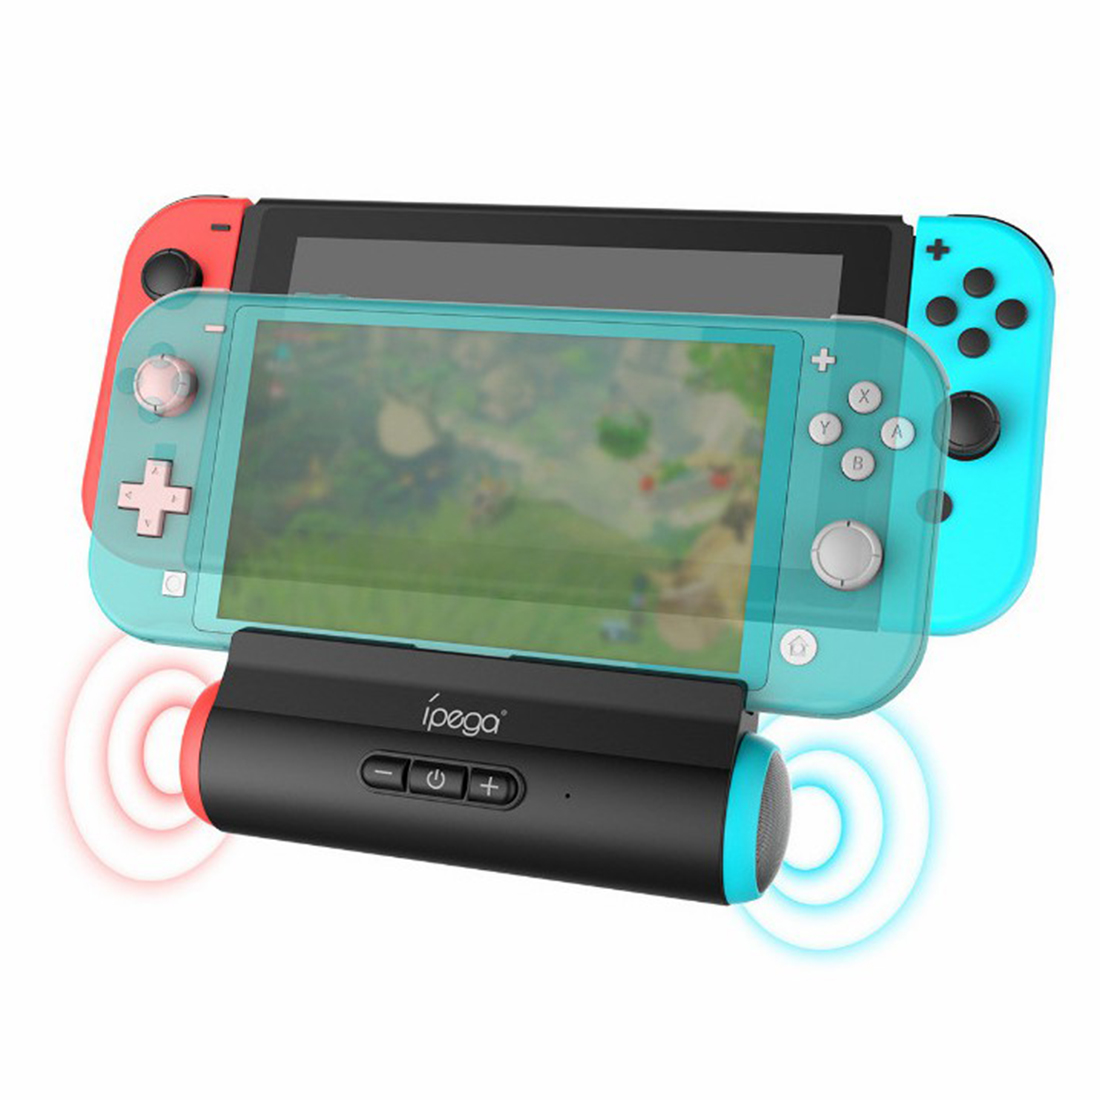 Console Charging Sound Stand Game Console Base Charger Speaker for Switch / Type-c Phone